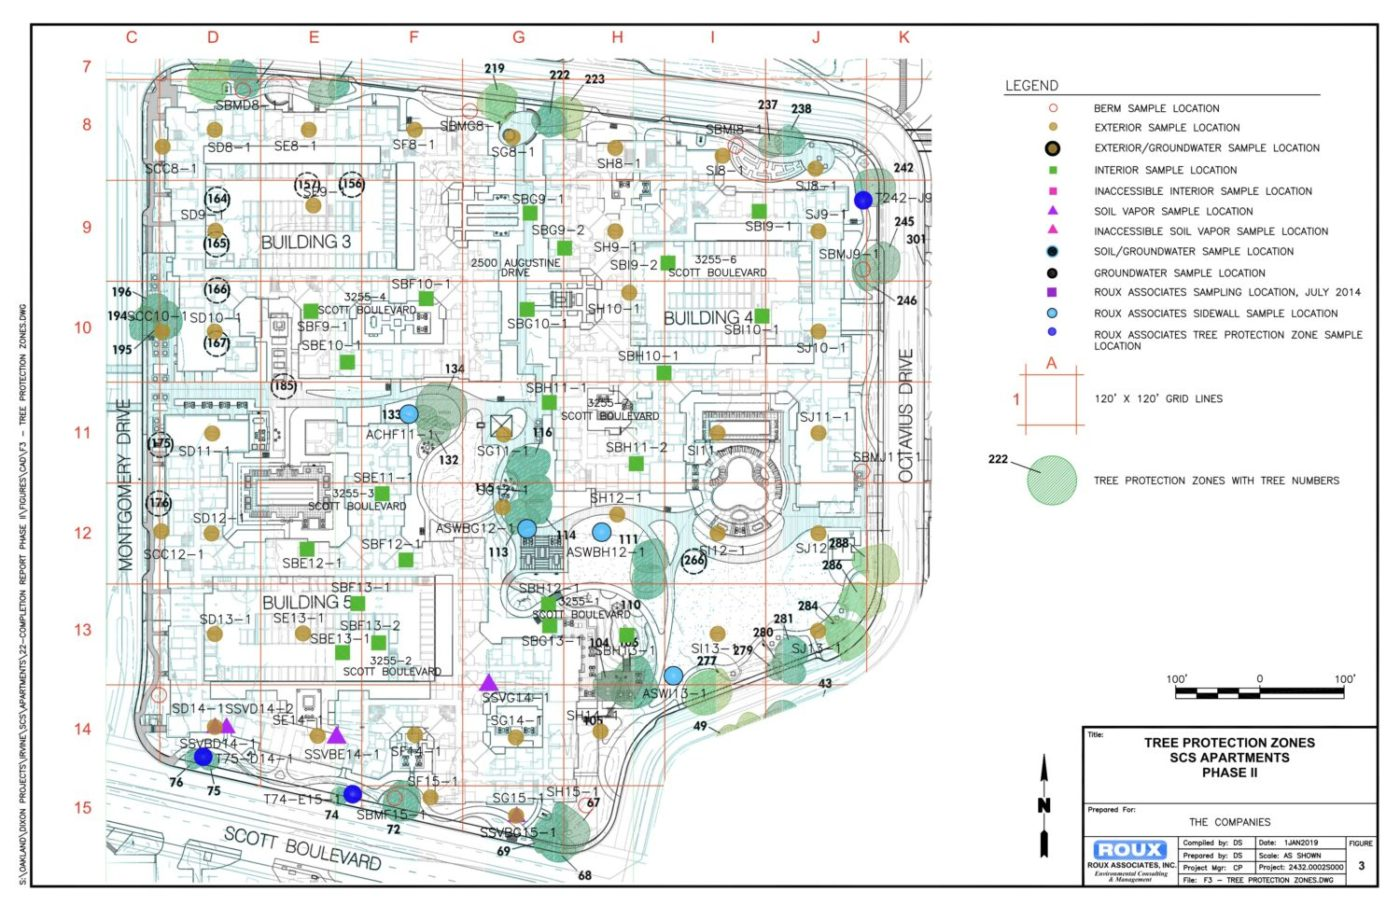 Tree-Protection-Zone-map-Santa-Clara-Square-Apartments-toxic-soil-cy-Ashley-Gjovik-1400x906, I thought I was dying: My apartment was built on toxic waste, Local News & Views